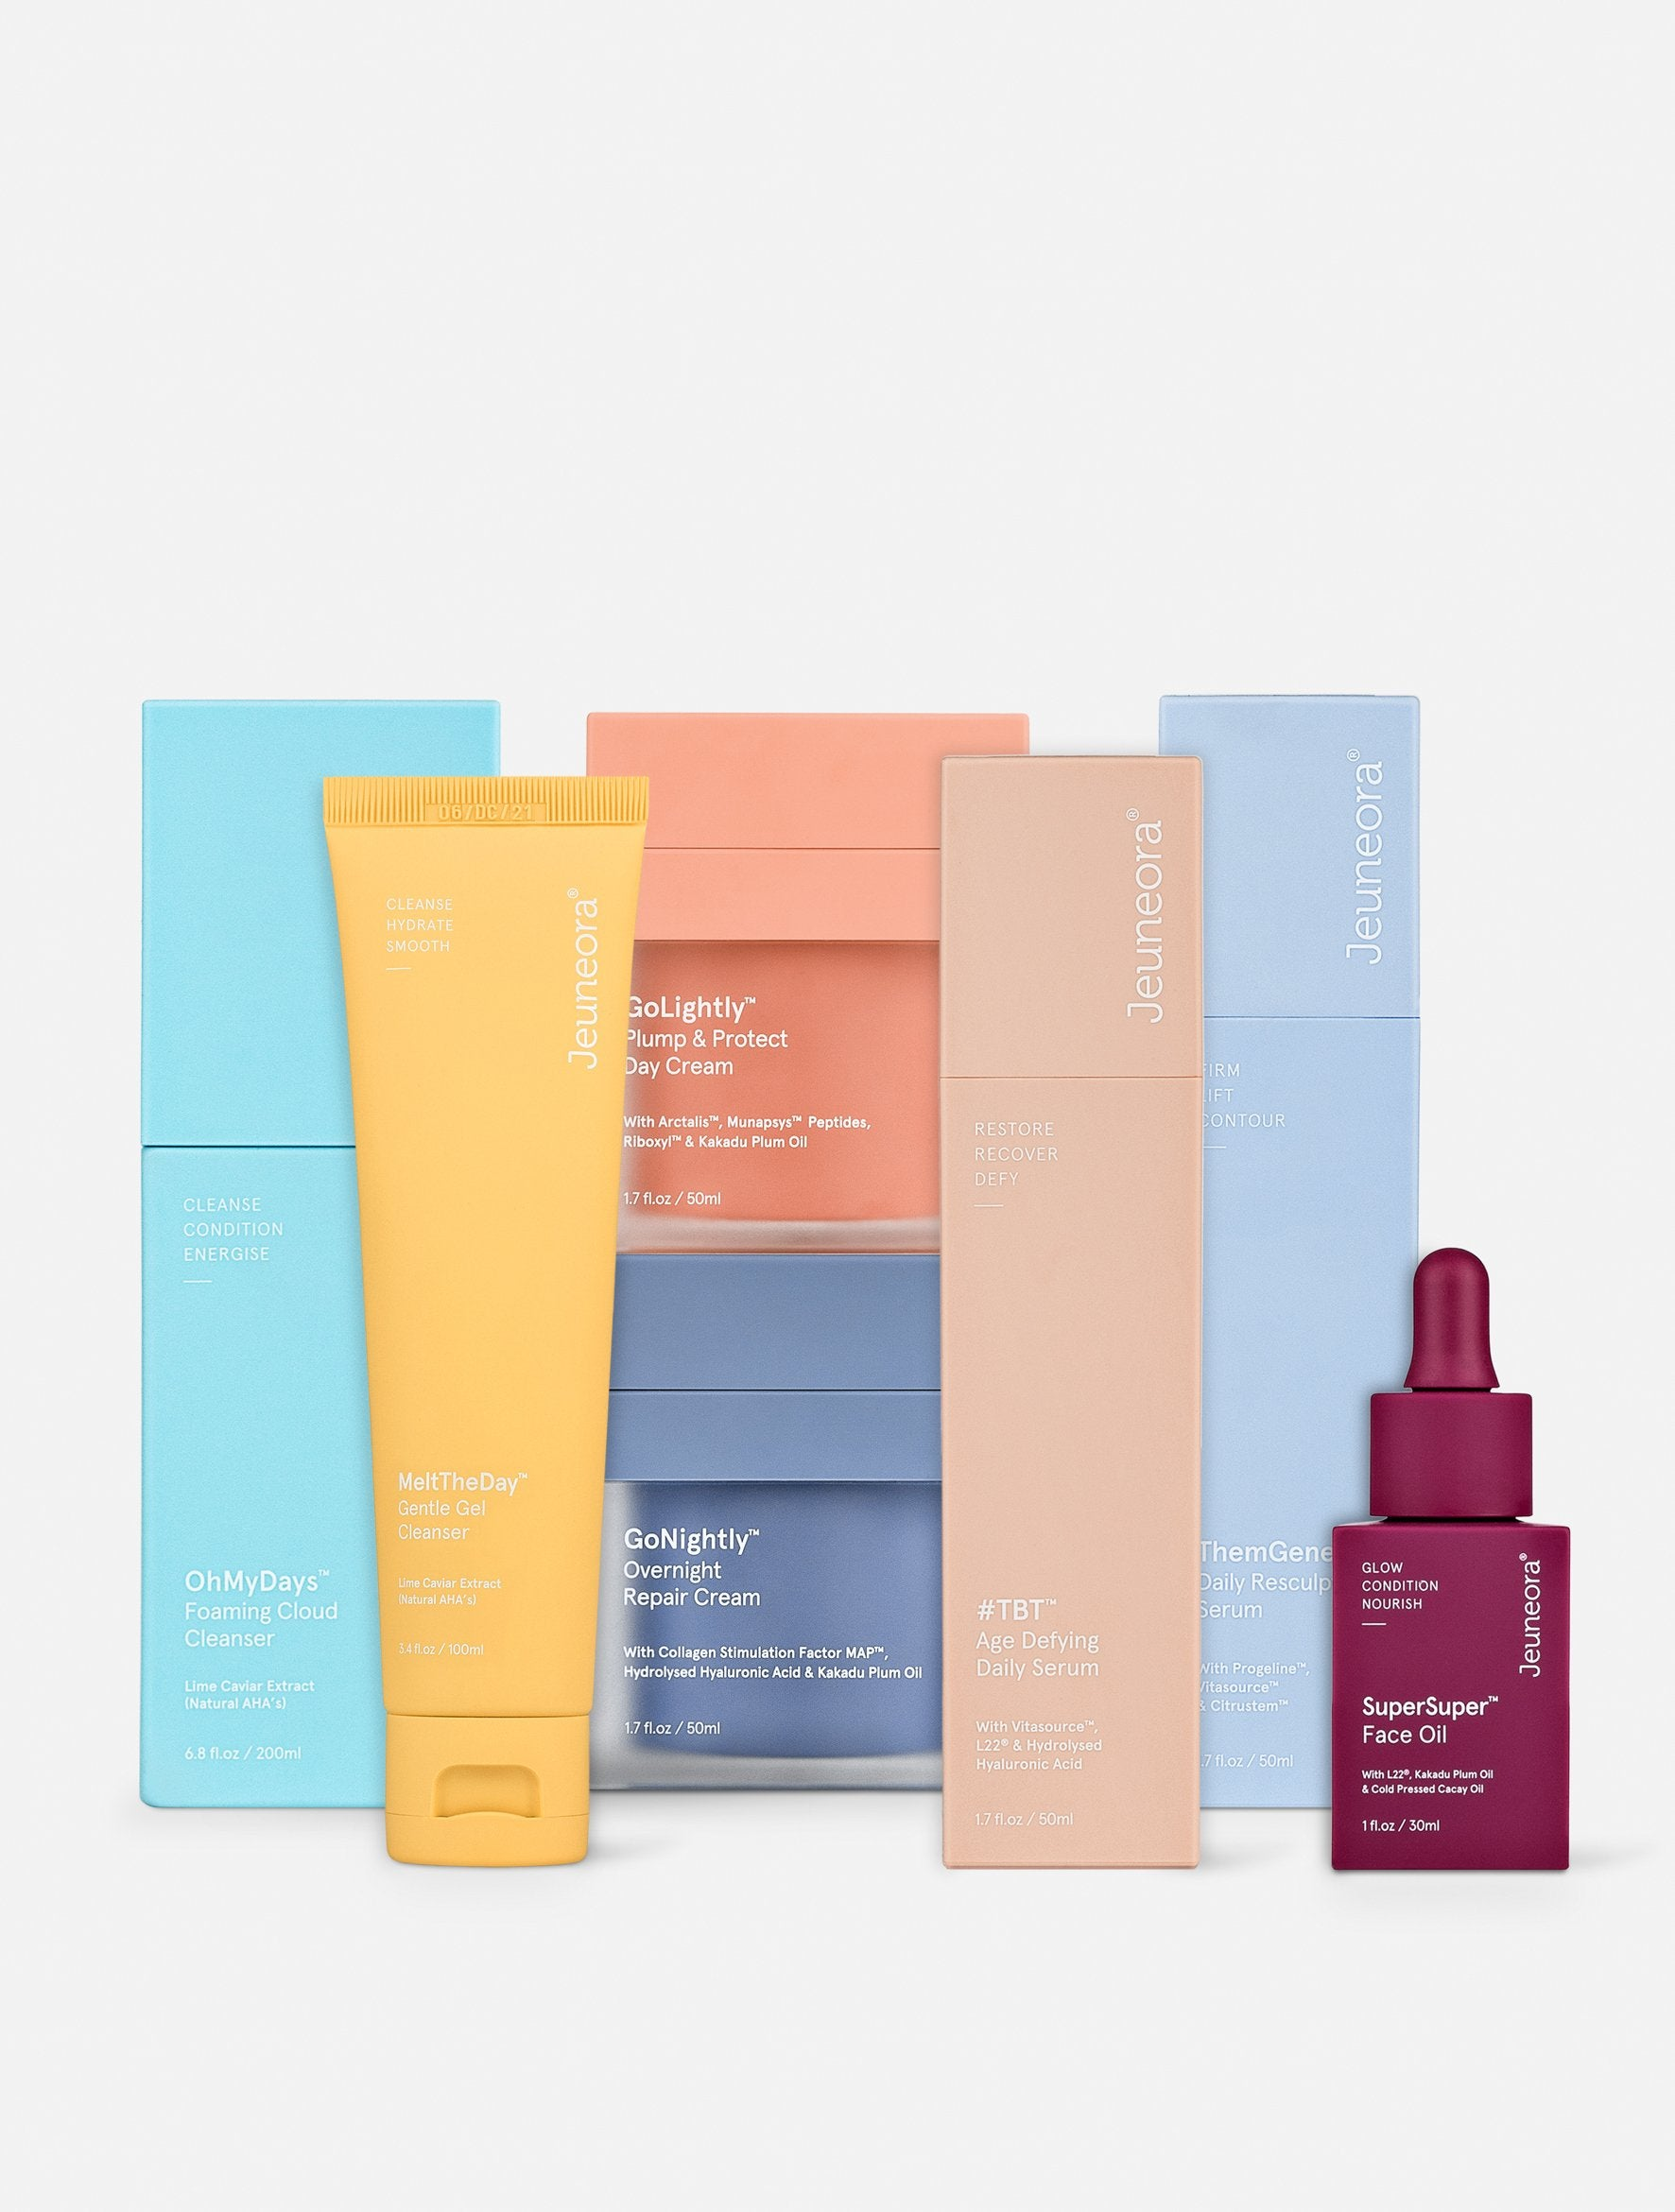 Jeuneora Skincare The Essential Seven